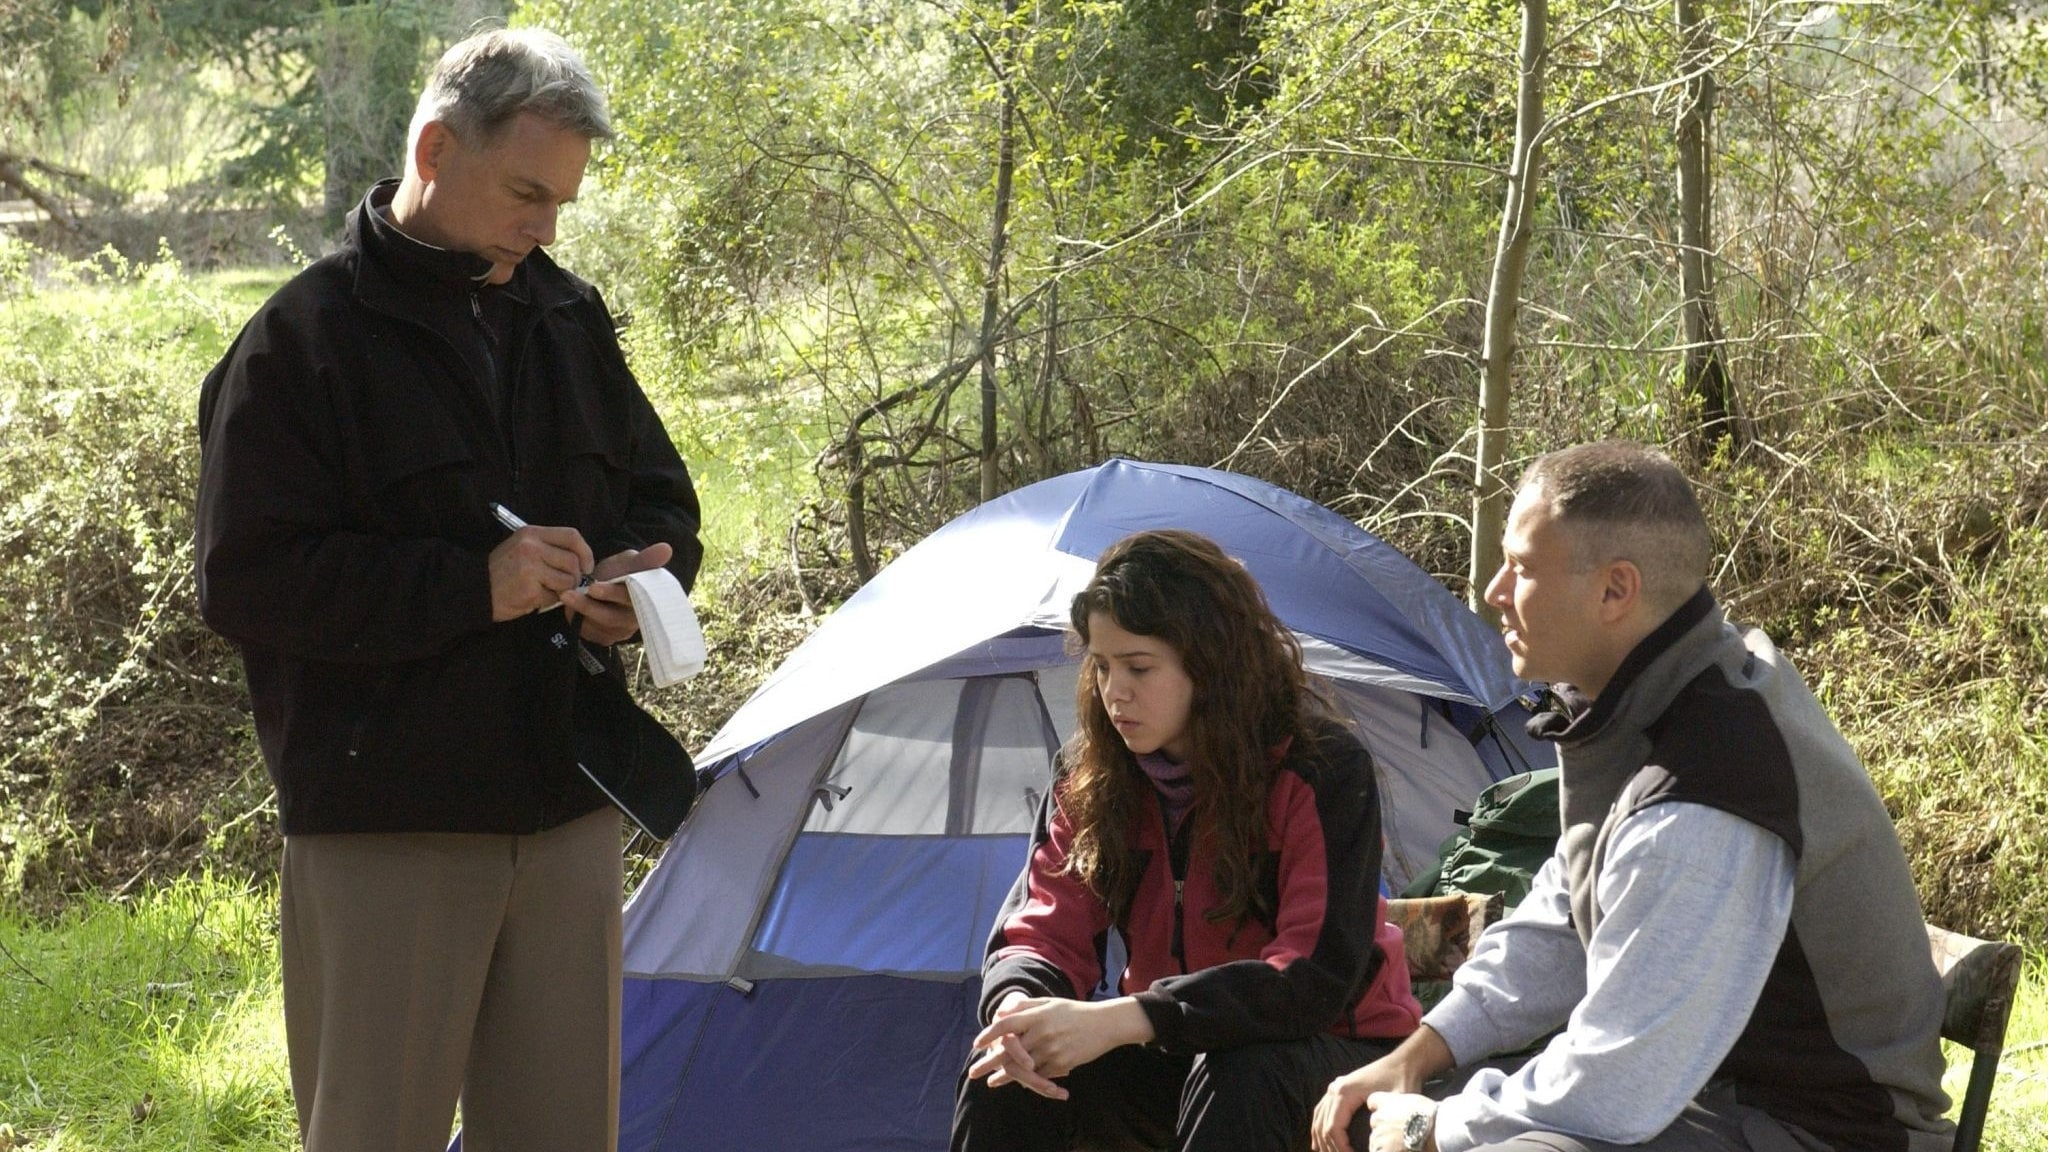 NCIS - Season 2 Episode 15 : Caught on Tape